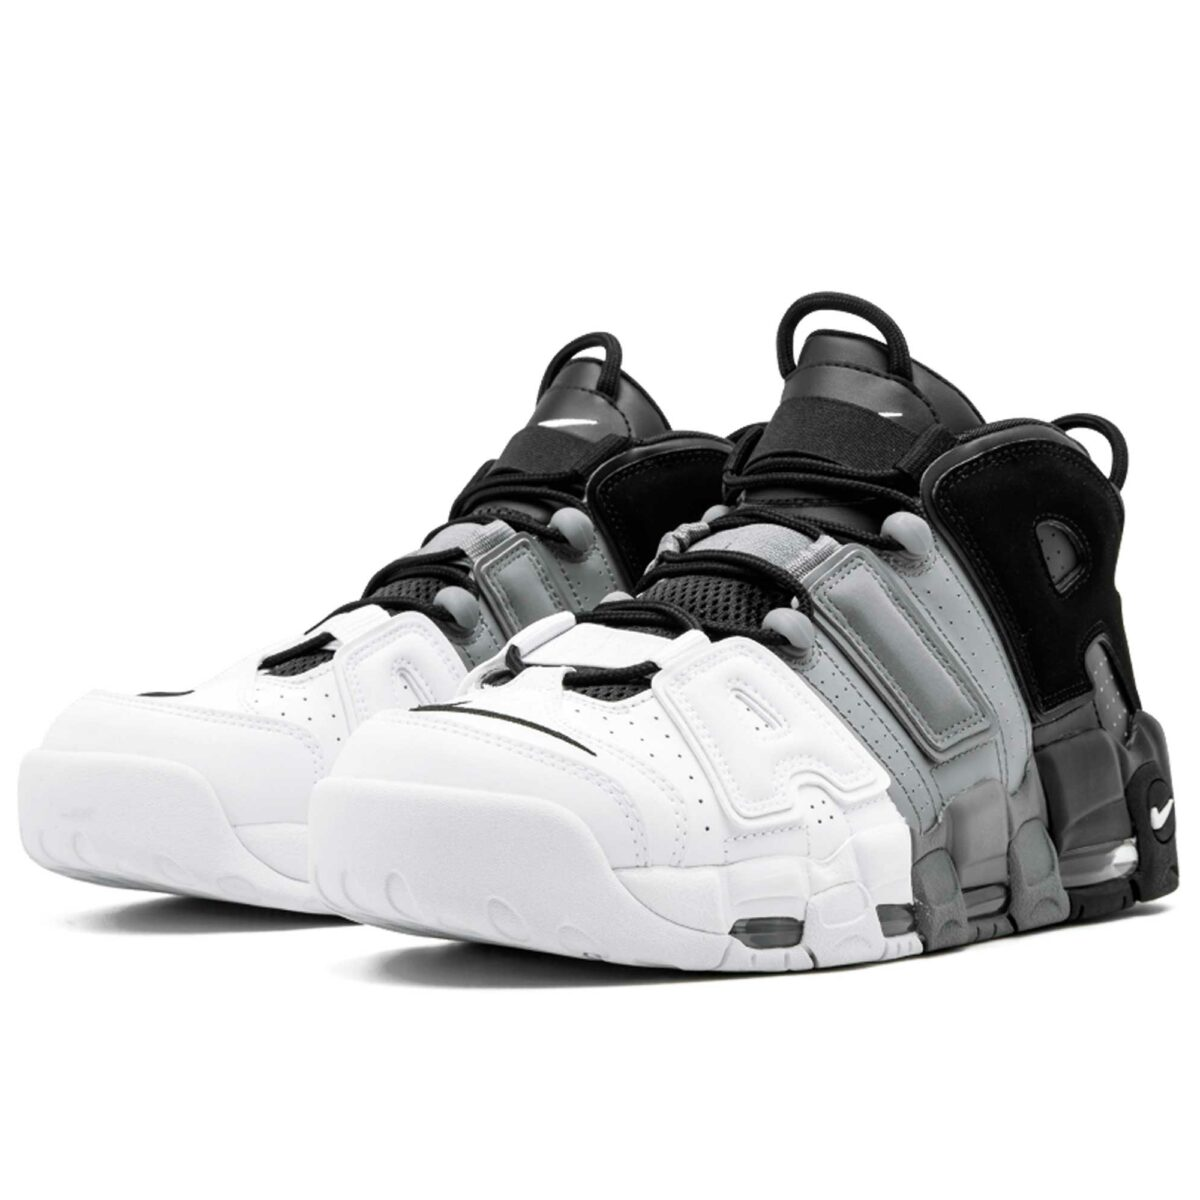 nike air more uptempo 96 black grey white 921948_002 купить